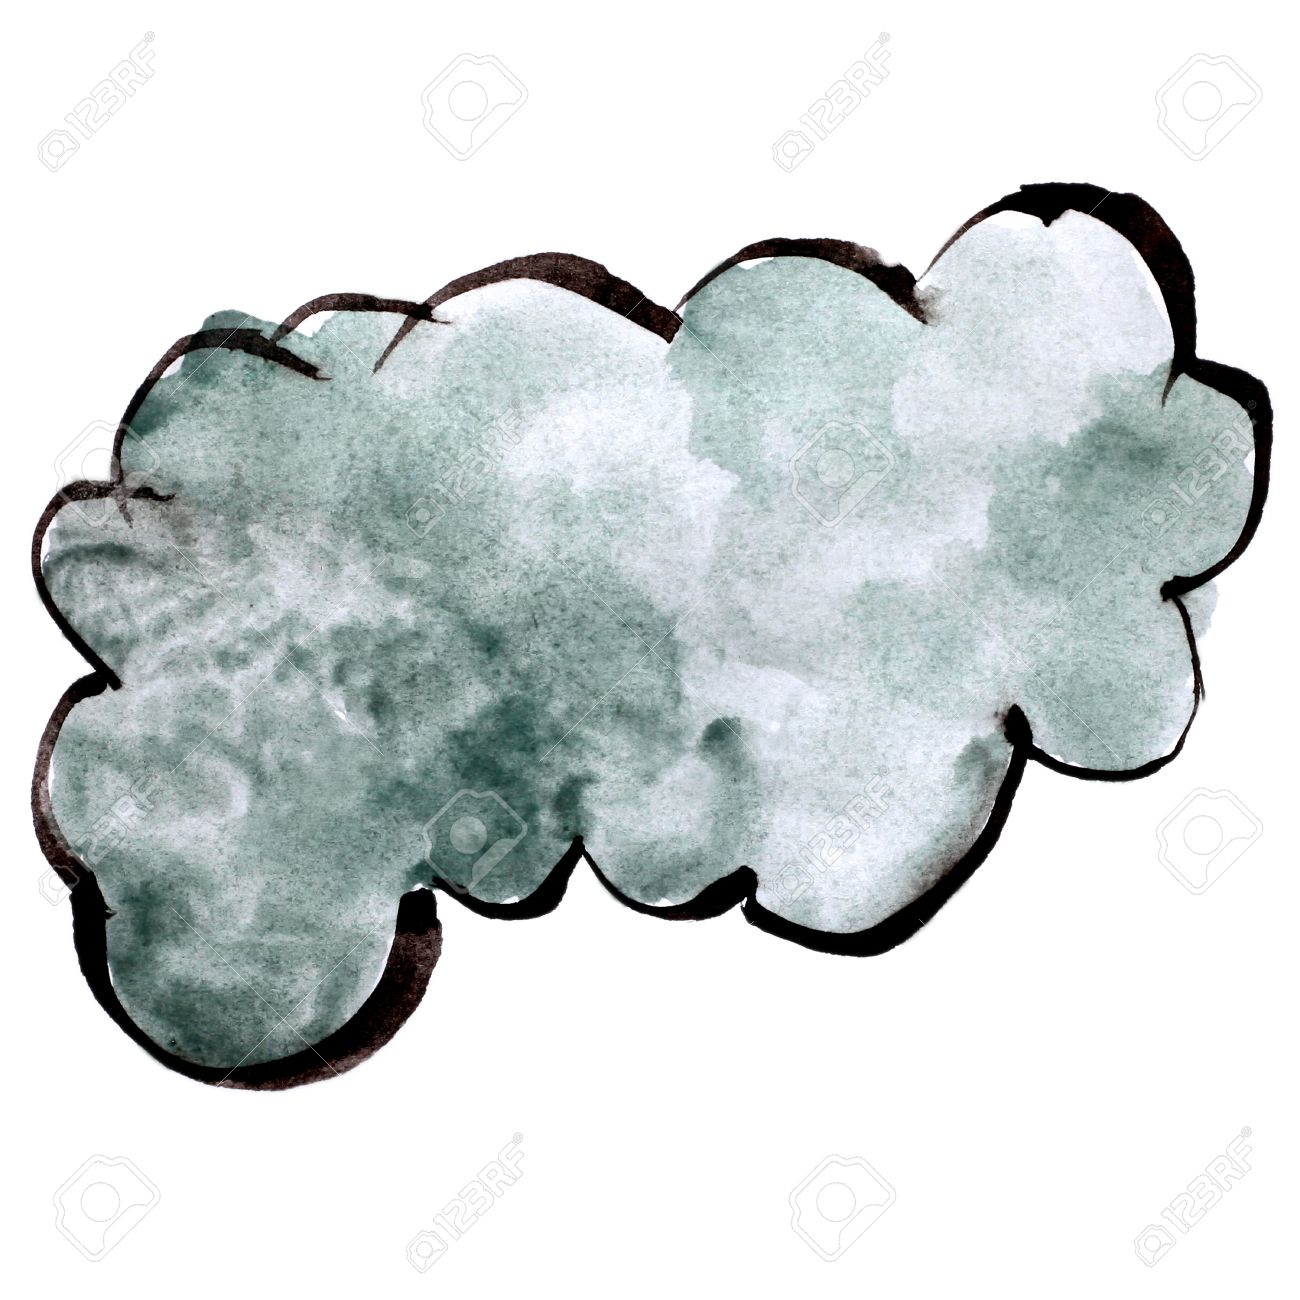 stroke cloud gray paint brush color watercolor isolated on white